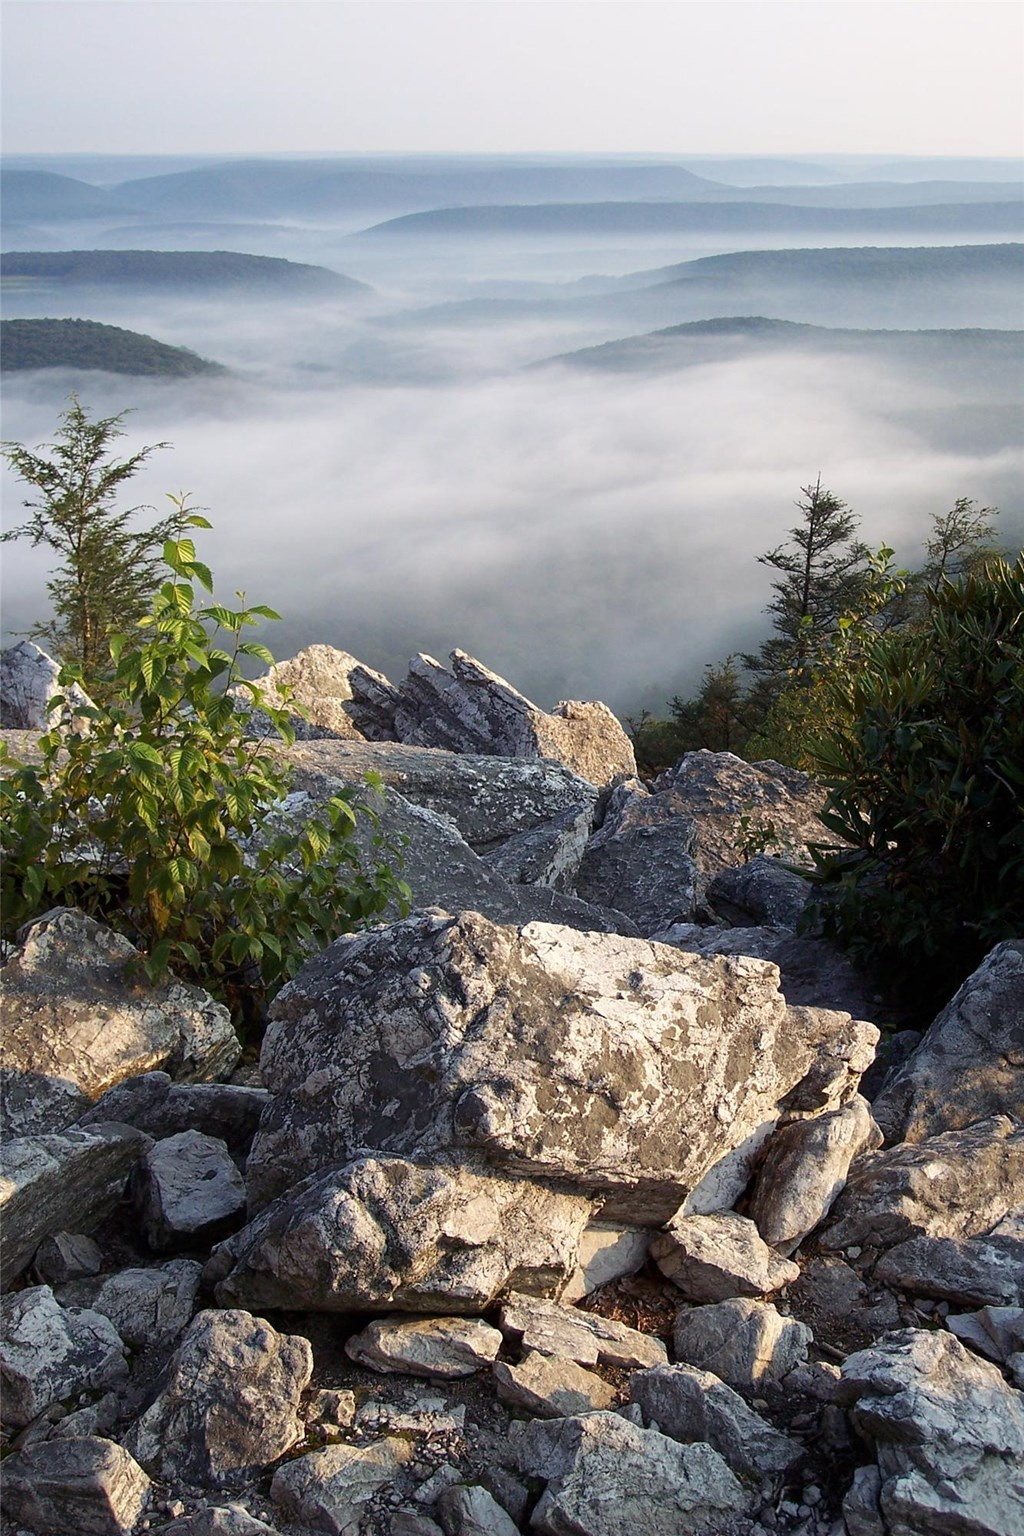 Fog settles among the mountain ridges, view from North Lookout.